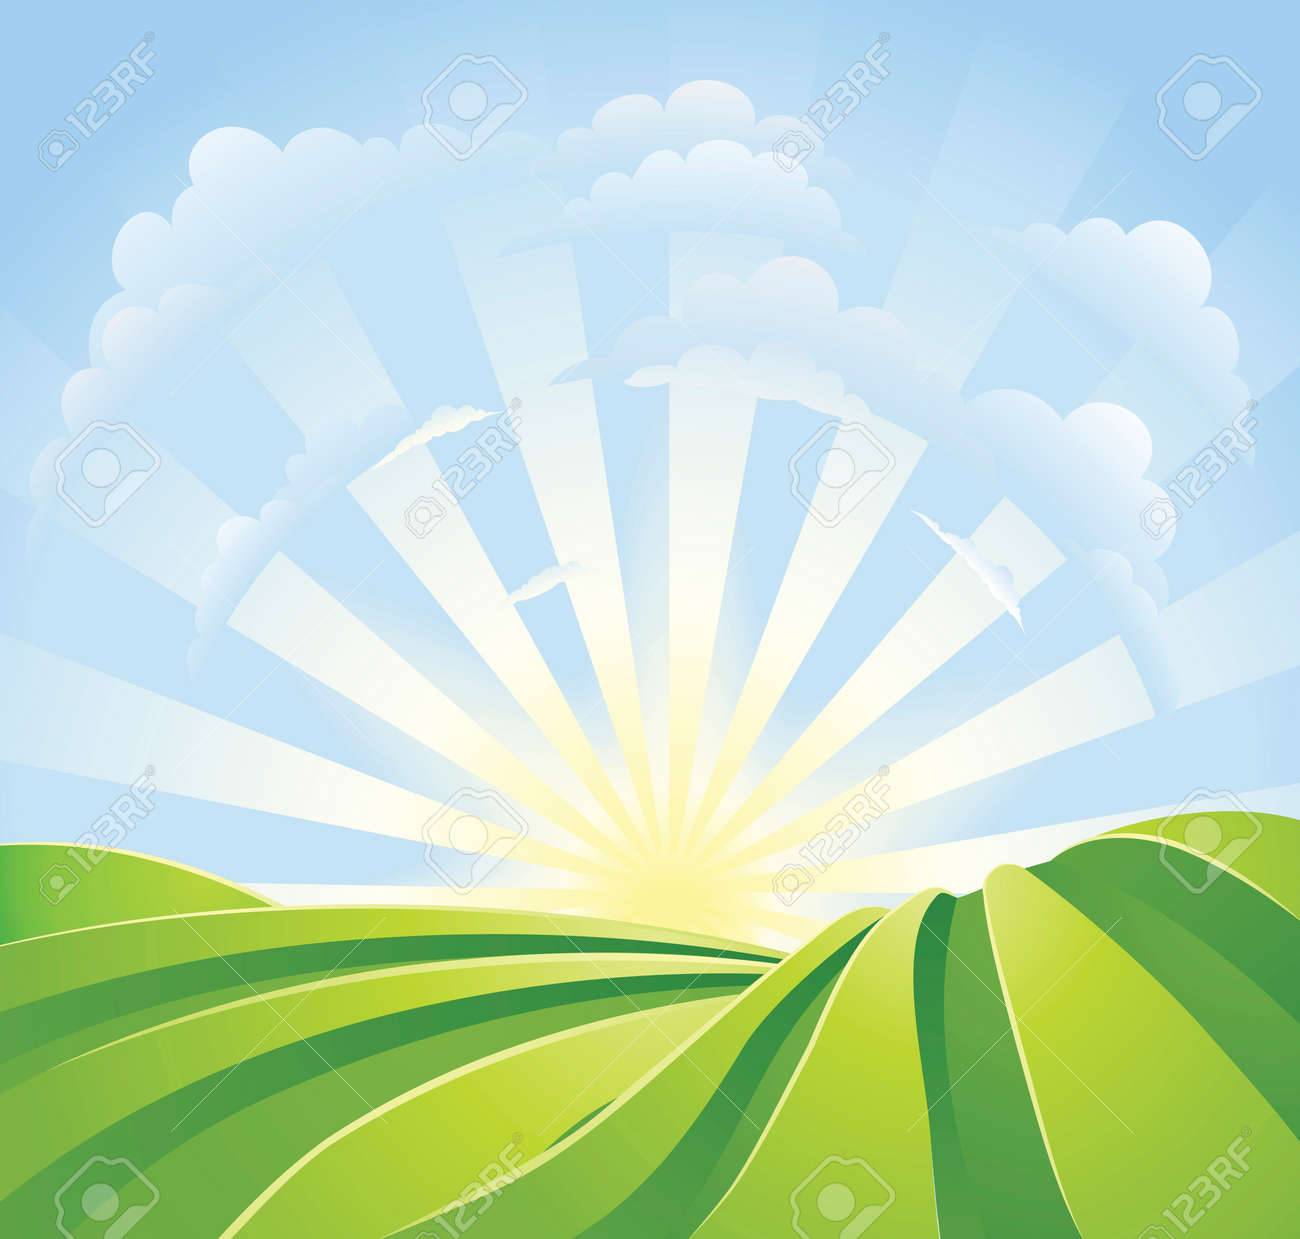 Illustration of idyllic green fields with sunshine rays and blue sky. A perfect landscape scene. - 8600699